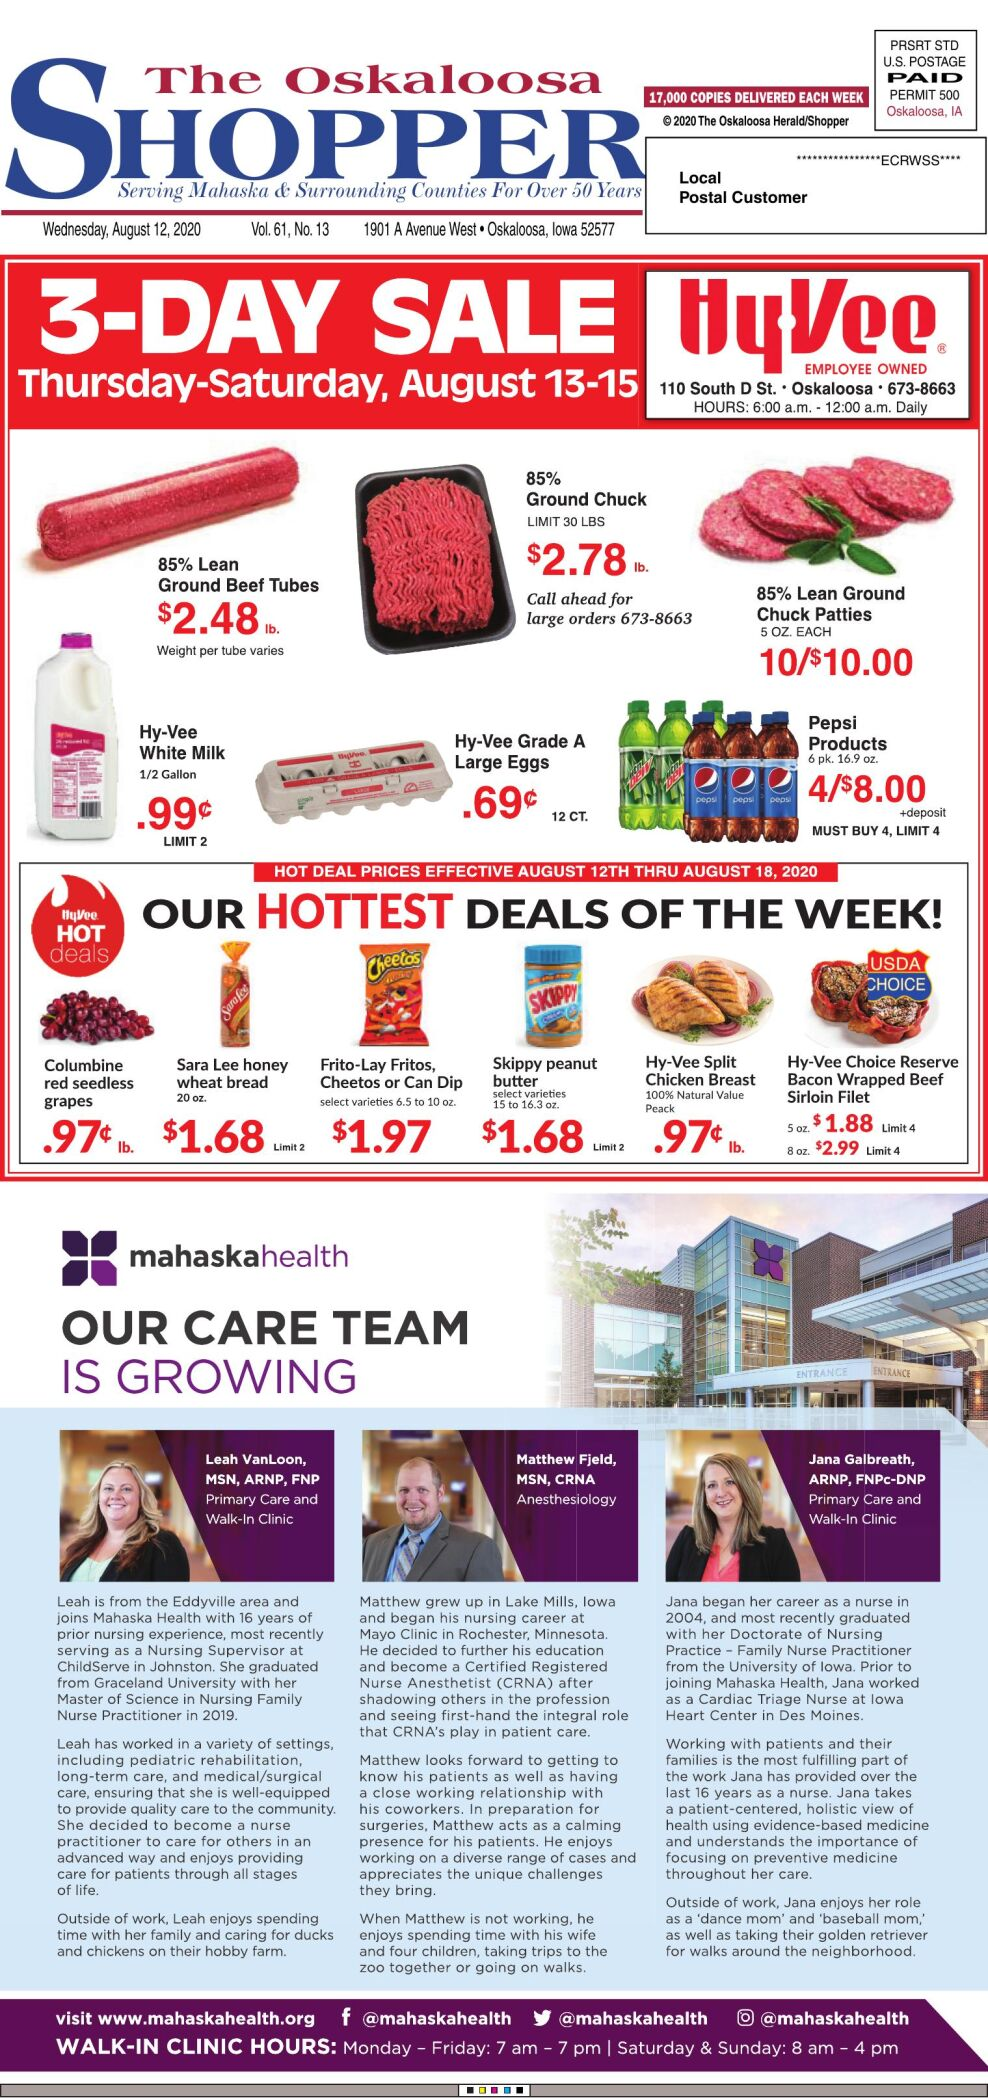 Oskaloosa Shopper week of 8/12/20